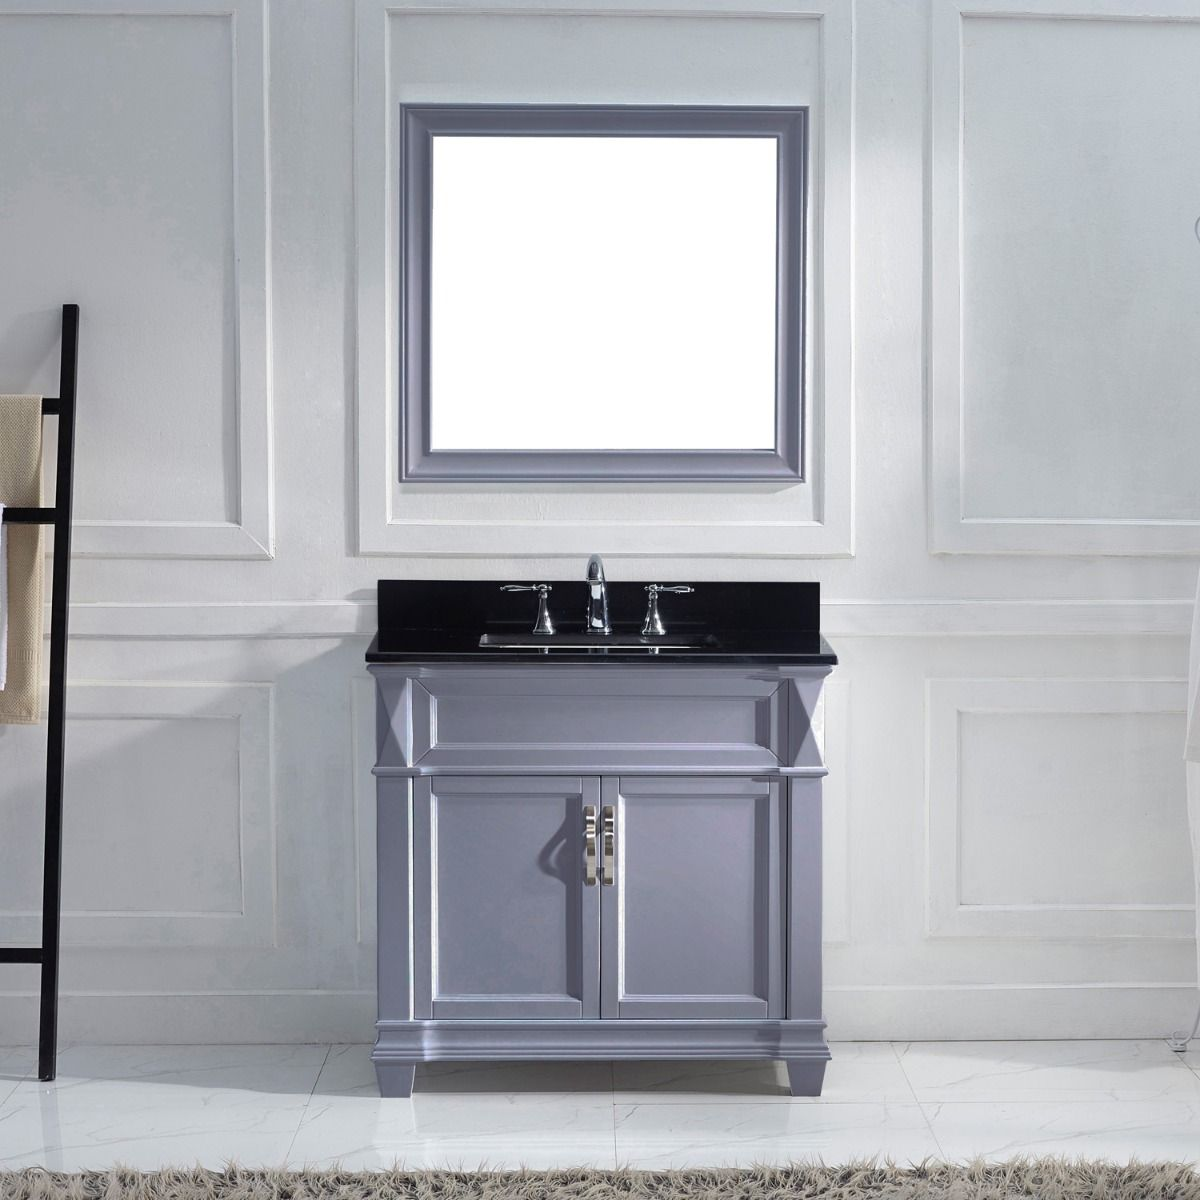 Victoria 36 Ms 2636 Bgsq Gr Single Bathroom Vanity In Grey With Black Galaxy Granite Top And Square Sink With Mirror